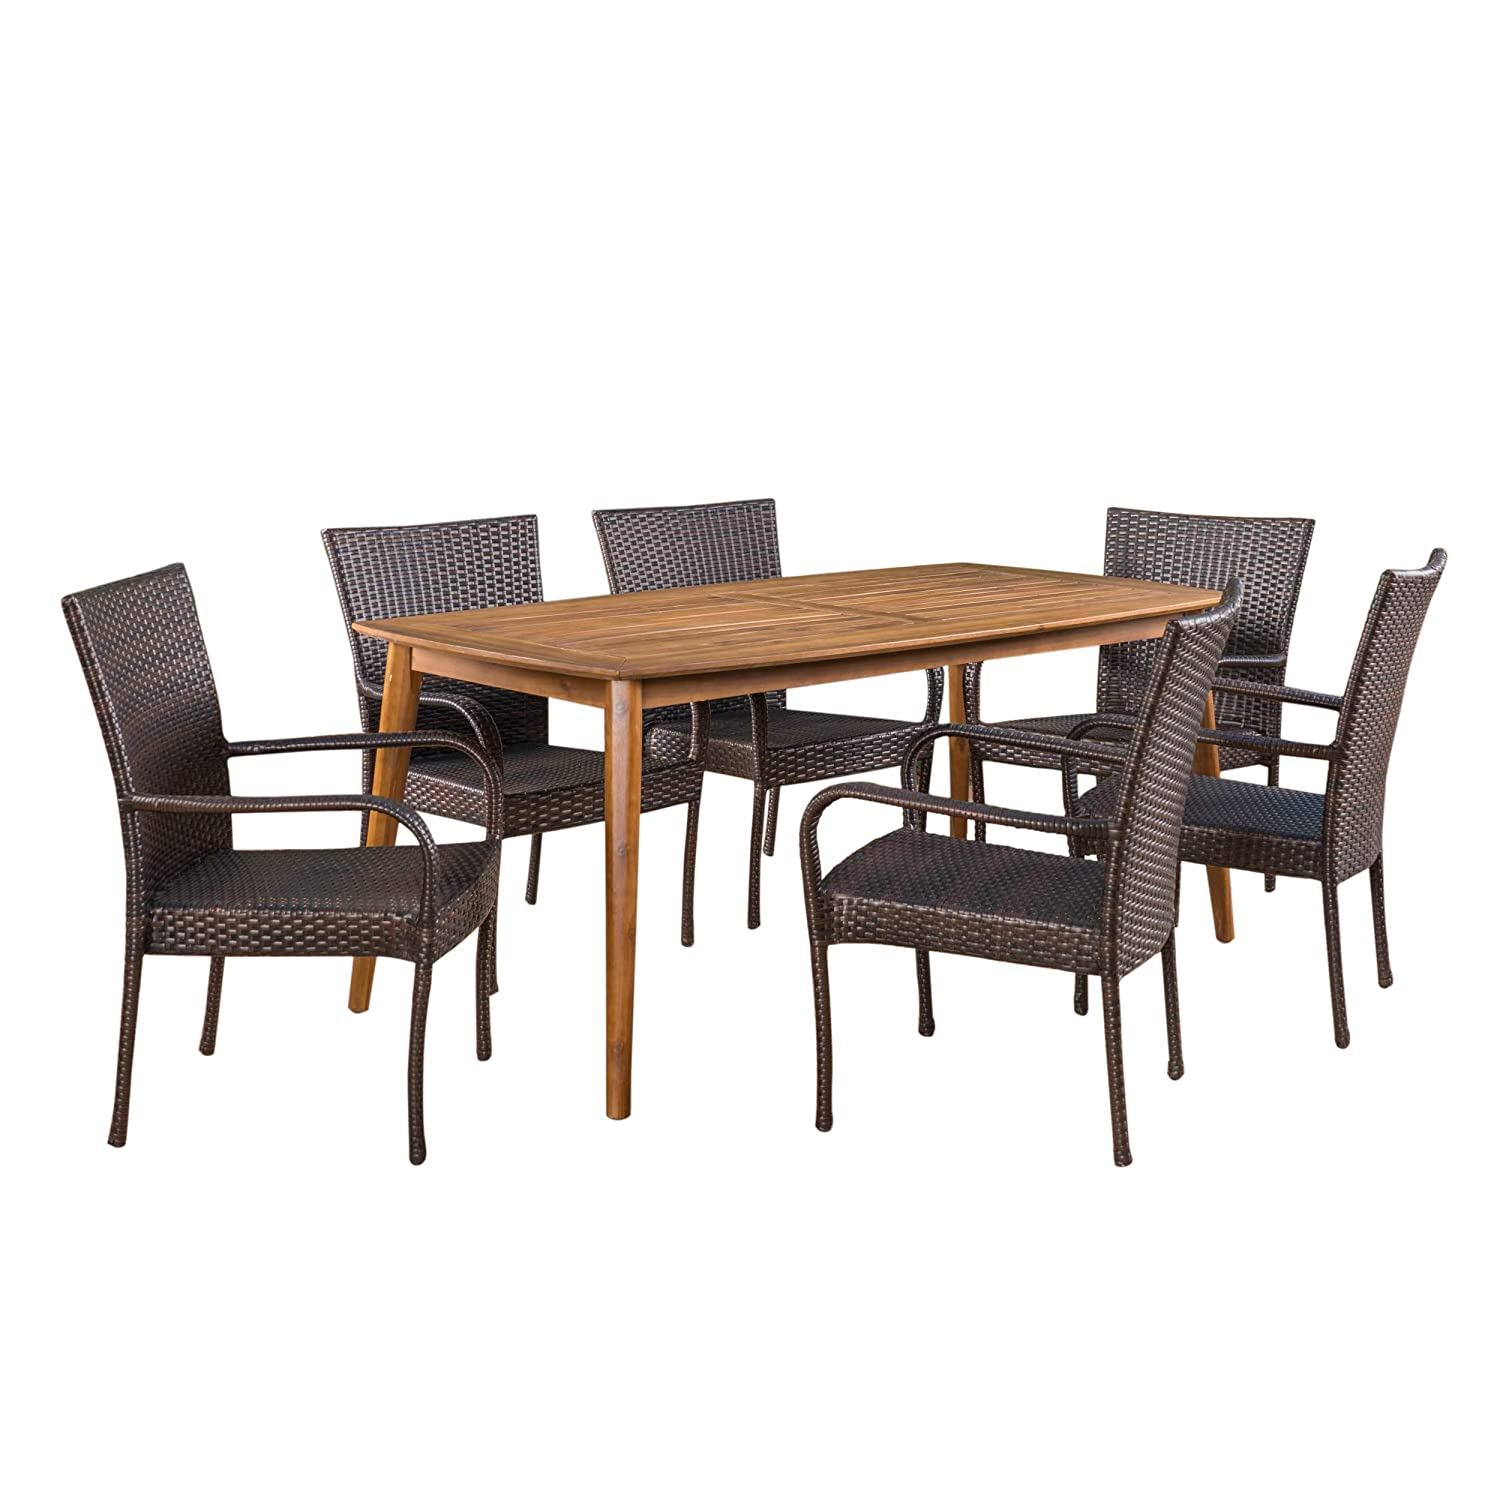 Christopher Knight Home Arthur Outdoor 7 Piece Multibrown Wicker Set with Teak Finish Rectangular Acacia Wood Dining Table